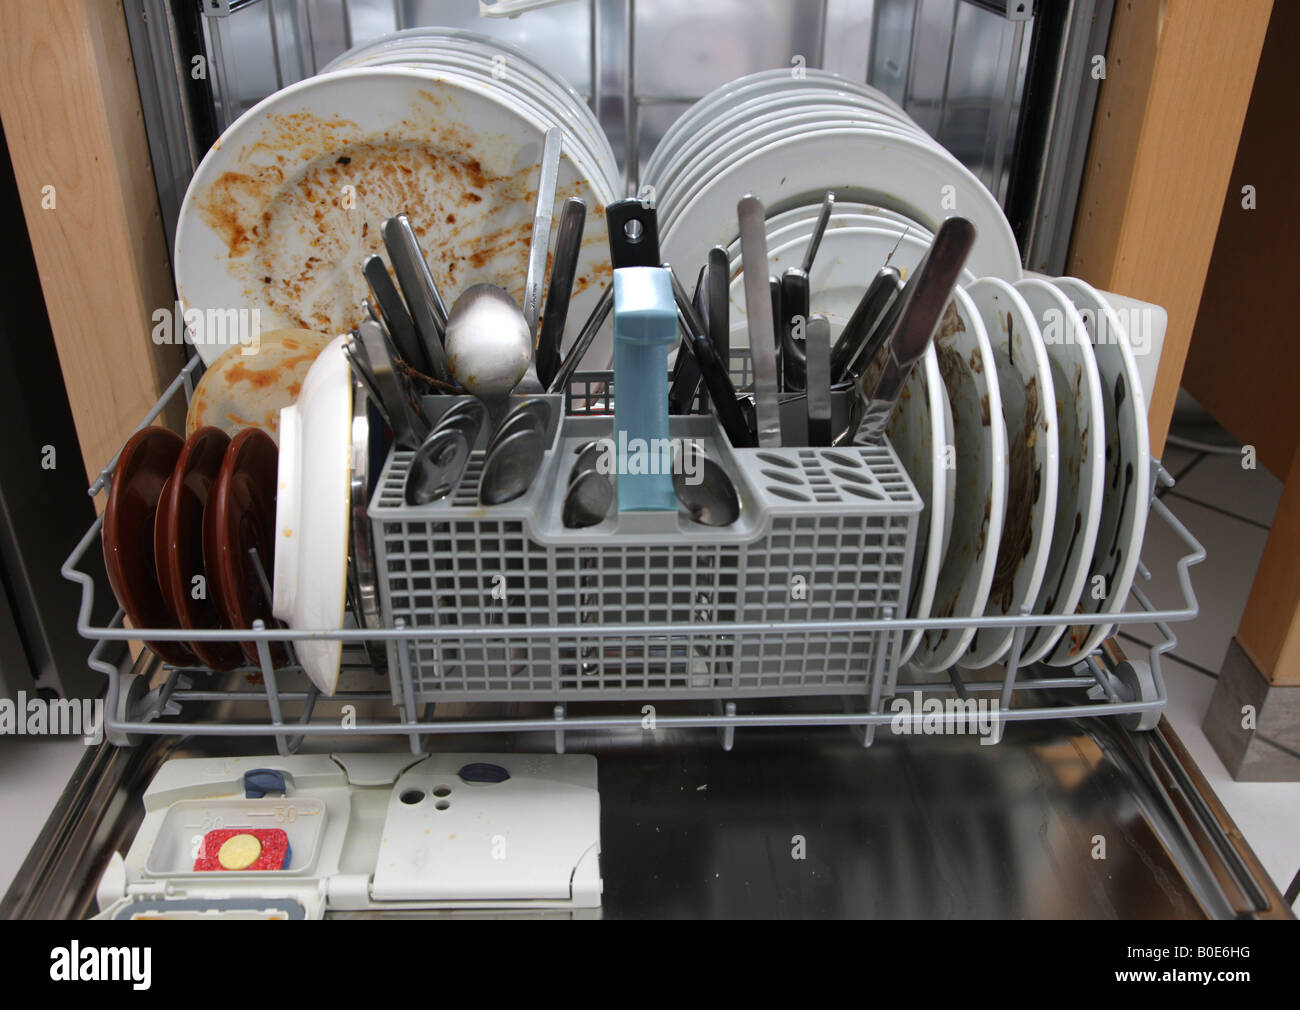 DEU Germany Dirty used dishes in a dishwasher Stock Photo ...